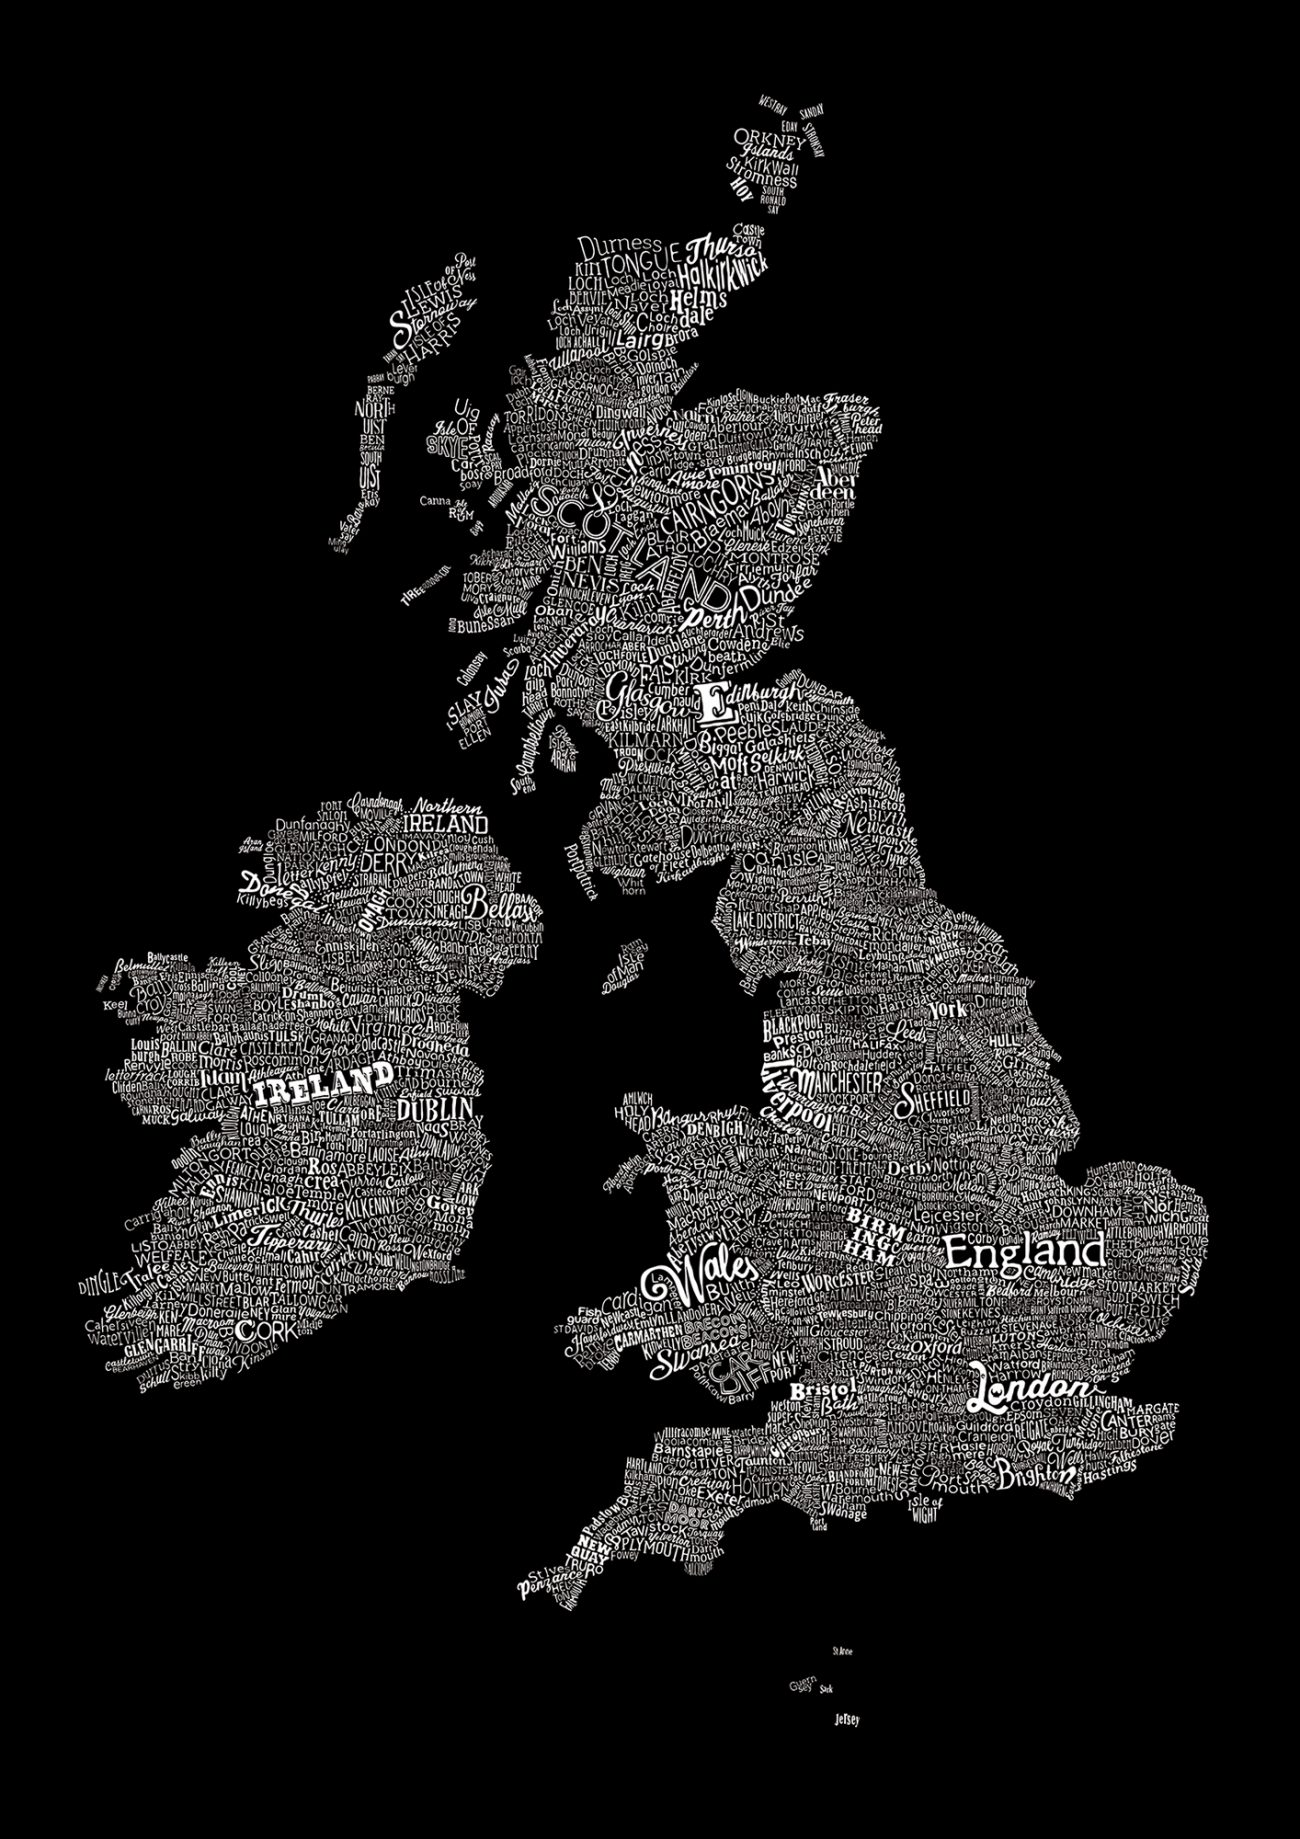 A typographic map of britain